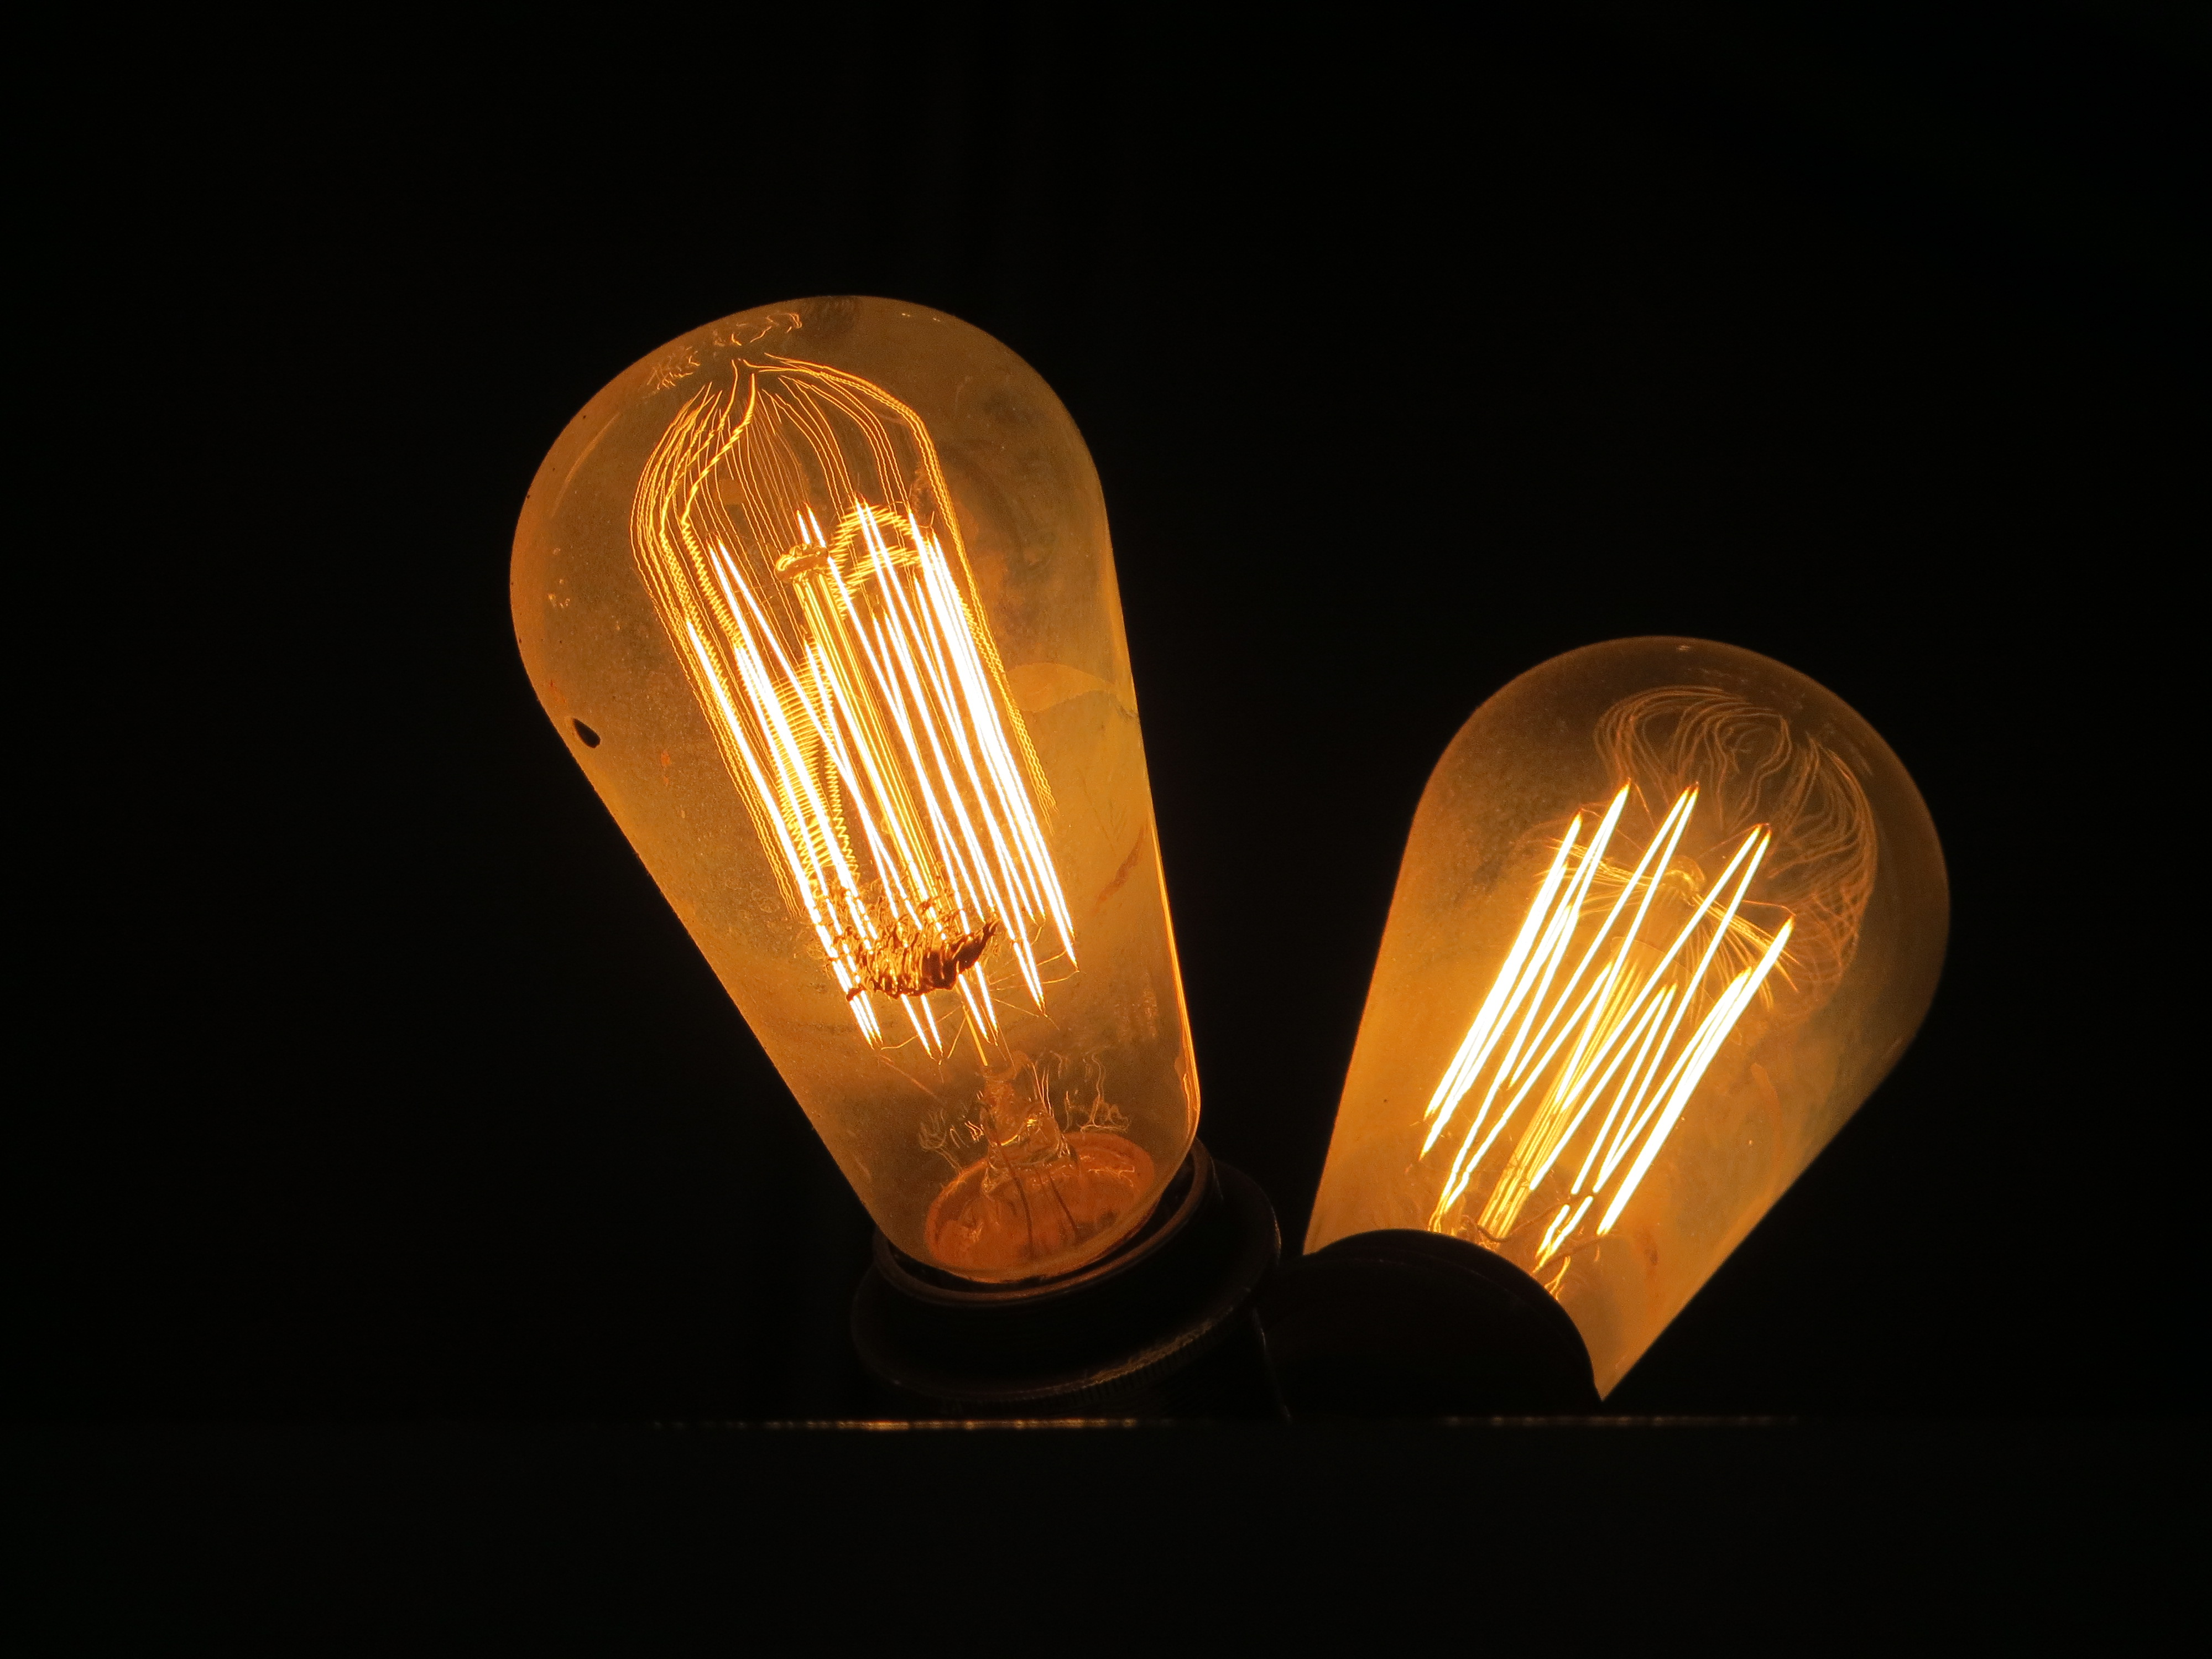 crowbar light bulbs details of the old fashioned incandesc. Black Bedroom Furniture Sets. Home Design Ideas